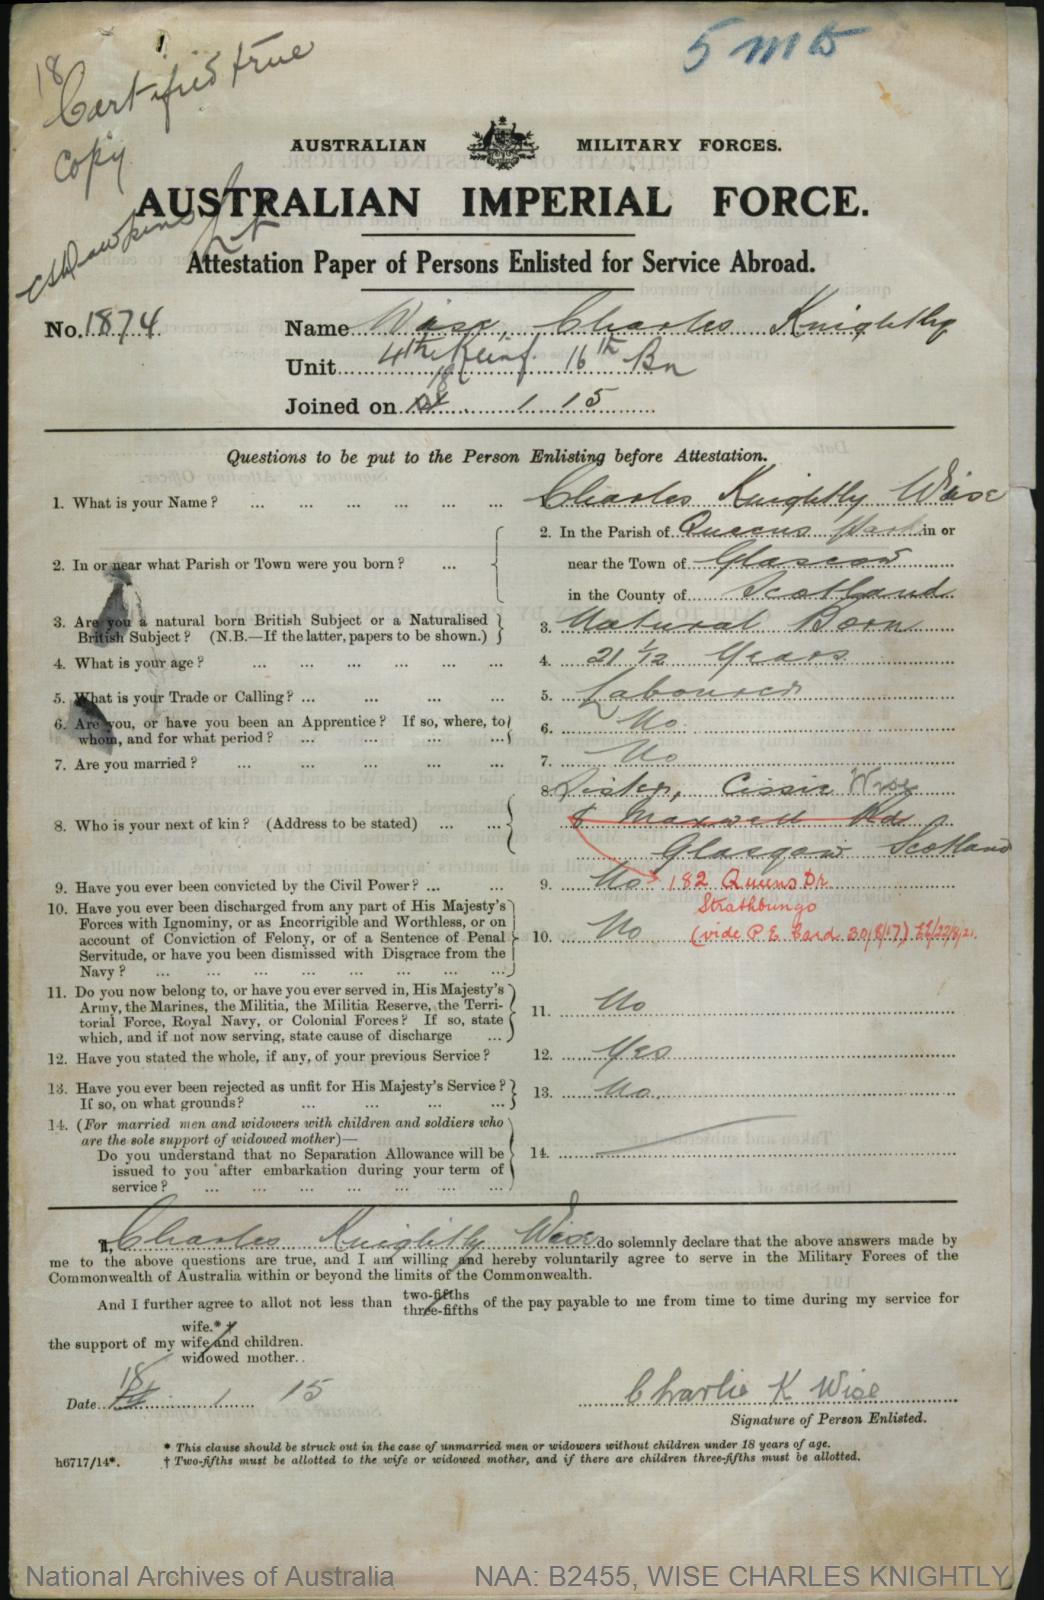 WISE Charles Knightly : Service Number - 1874 : Place of Birth - Glasgow Scotland : Place of Enlistment - Perth WA : Next of Kin - (Sister) WISE Cissie